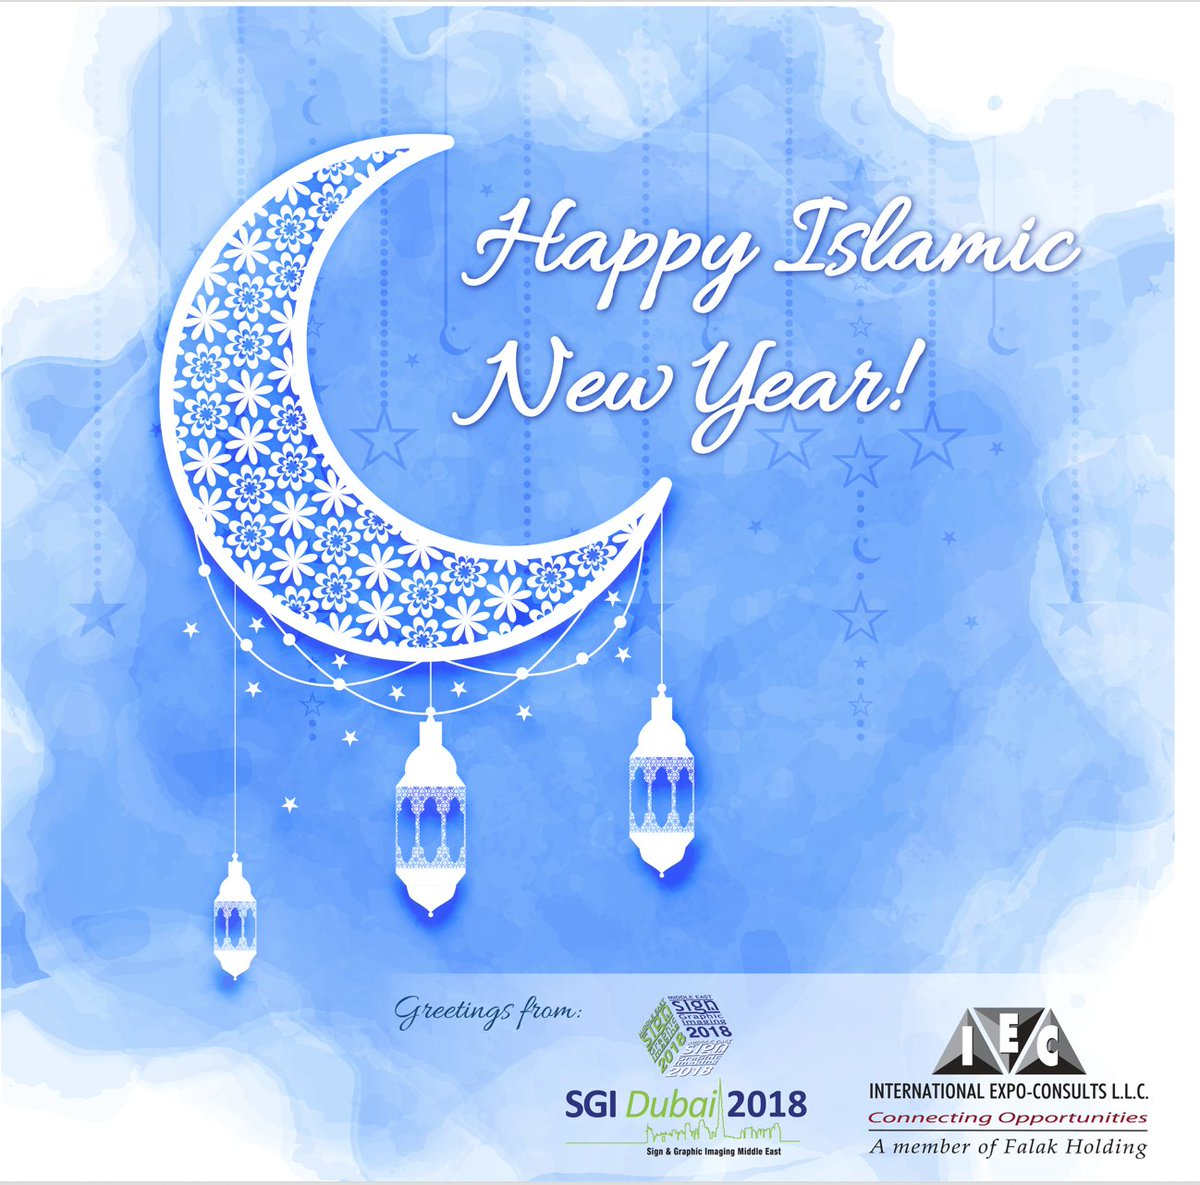 Sgi dubai 2019 on twitter happy islamic new year to everyone sgi dubai 2019 on twitter happy islamic new year to everyone celebrating islamicnewyear sgidubai2018 printing fbc dubai uae 2018 m4hsunfo